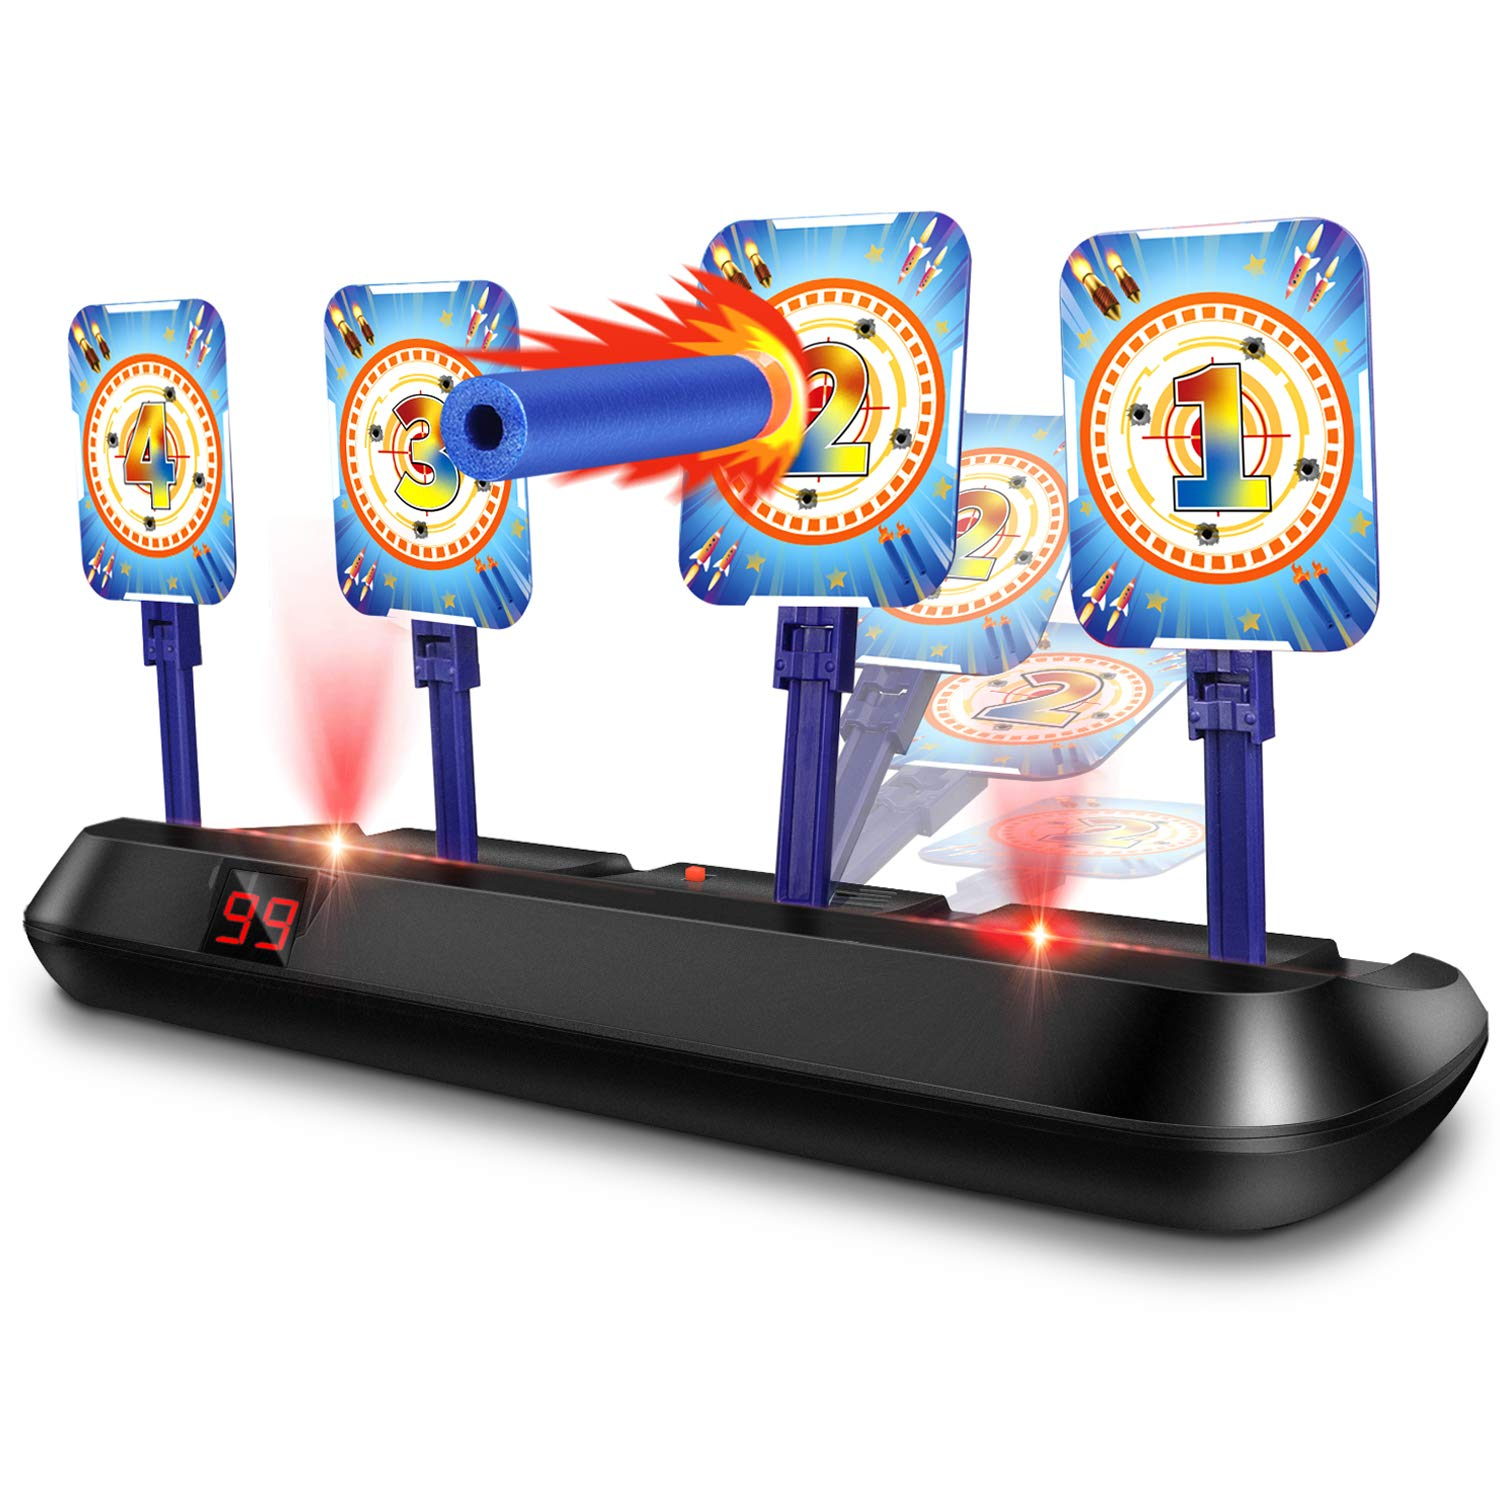 EKOOS Electric Shooting Target Shooting Game Toy for Kids with Auto Reset Digital Targets, Compatible with Nerf Guns Water Bomb Guns Popper Guns for Kids Toy Gun Shooting Practice